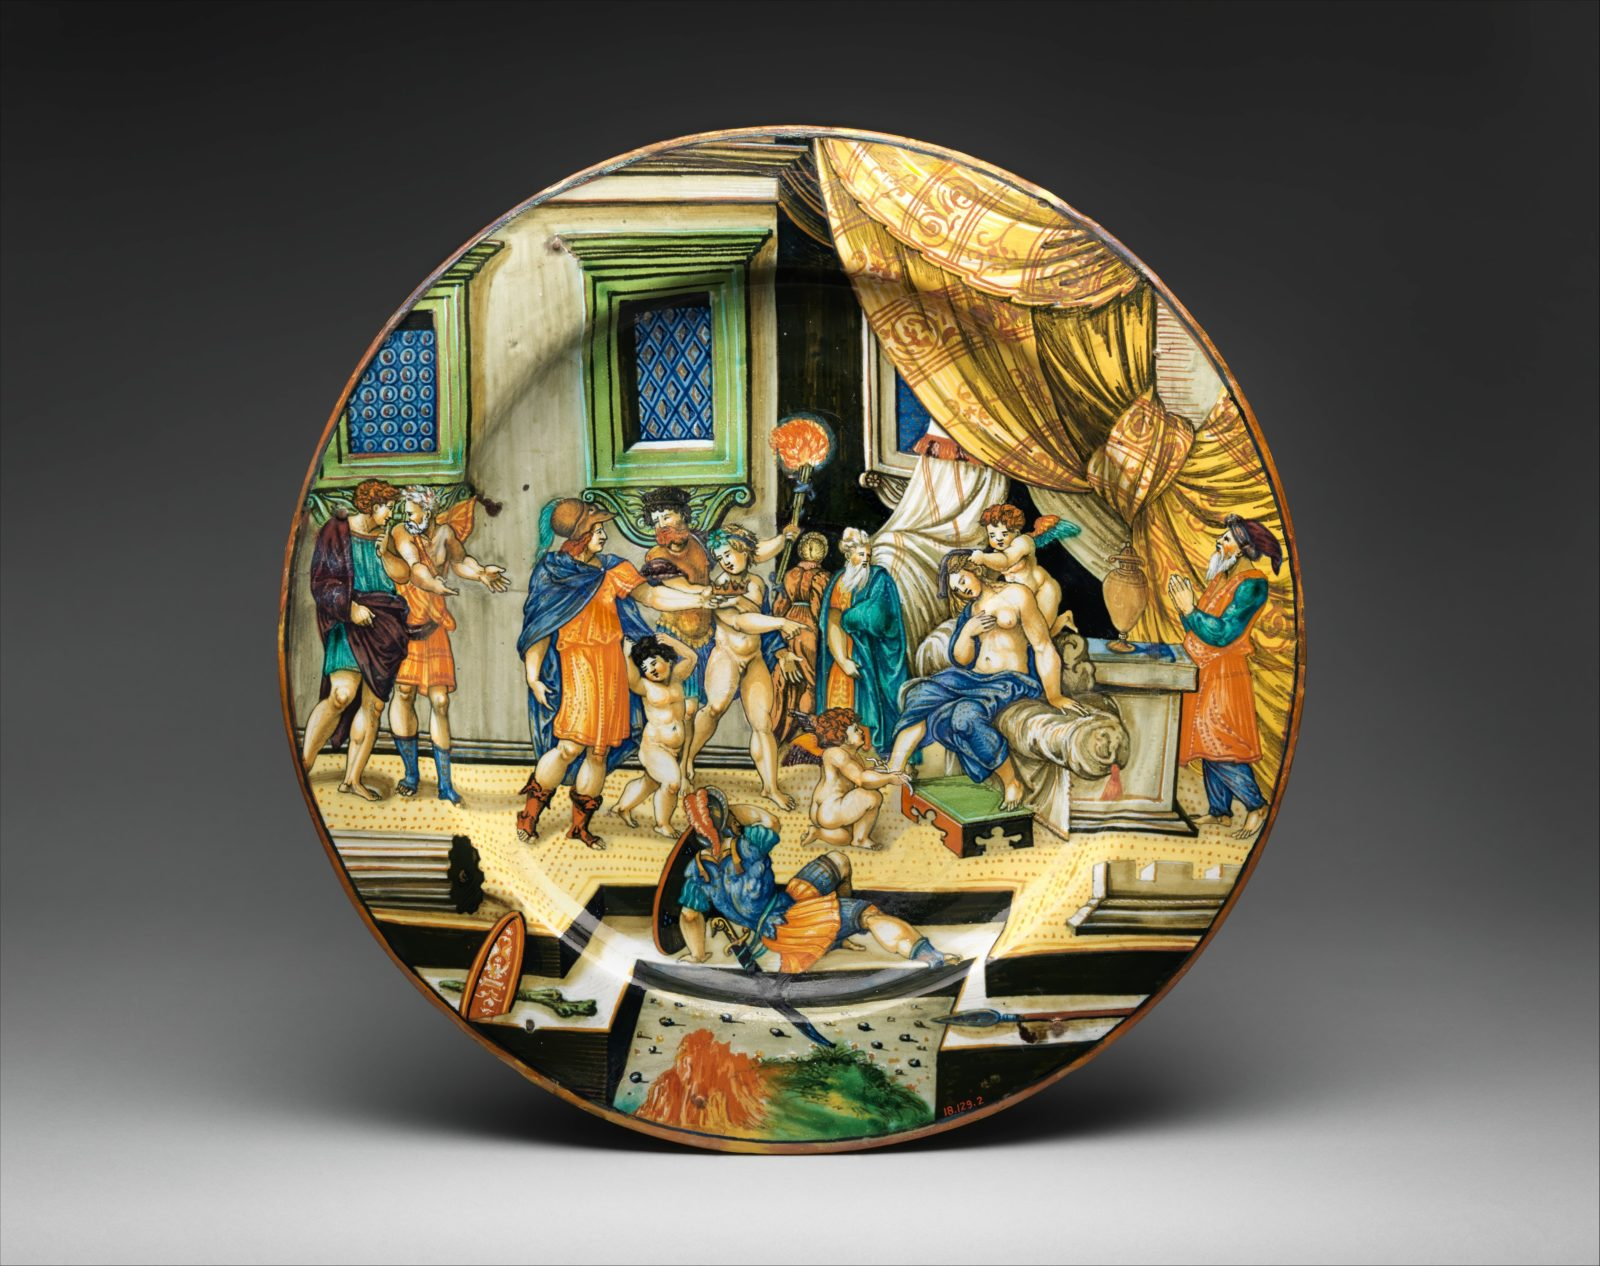 Dish with The Story of Semiramis